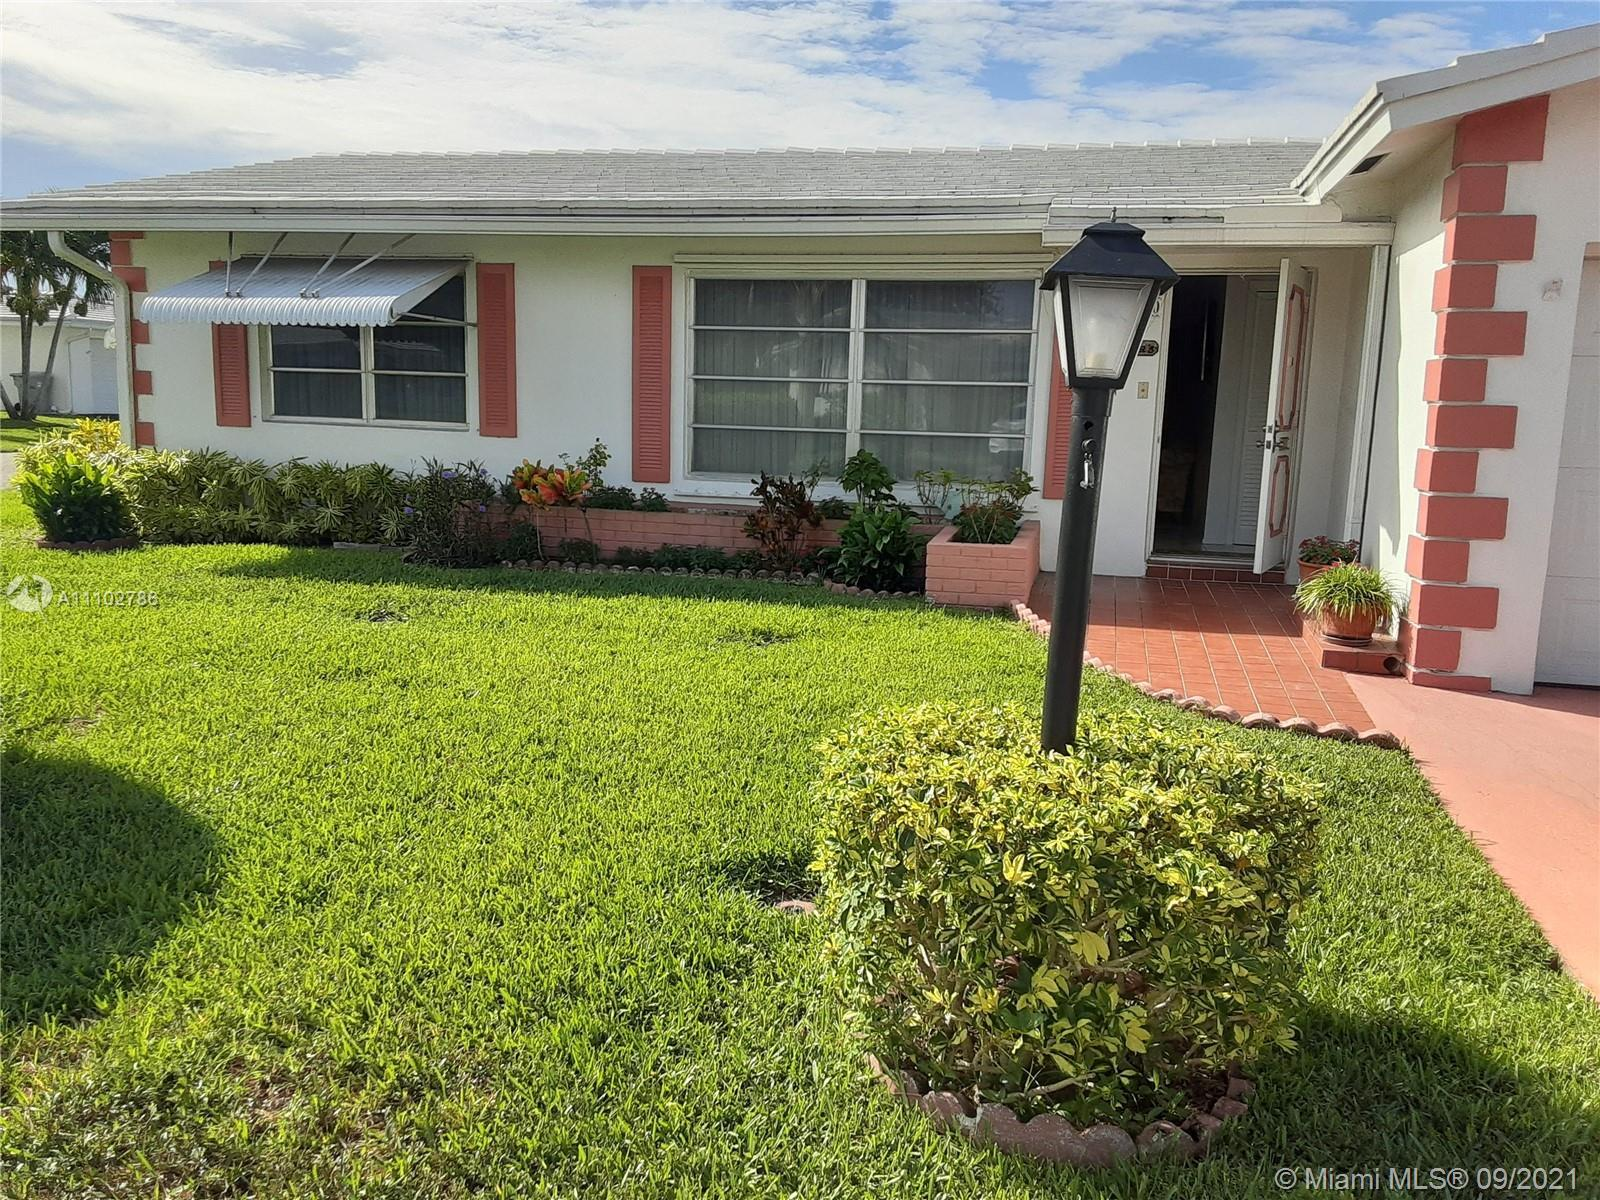 This is a 55 and over community, Beautiful house ,great community, spacious bathrooms ,close to majo